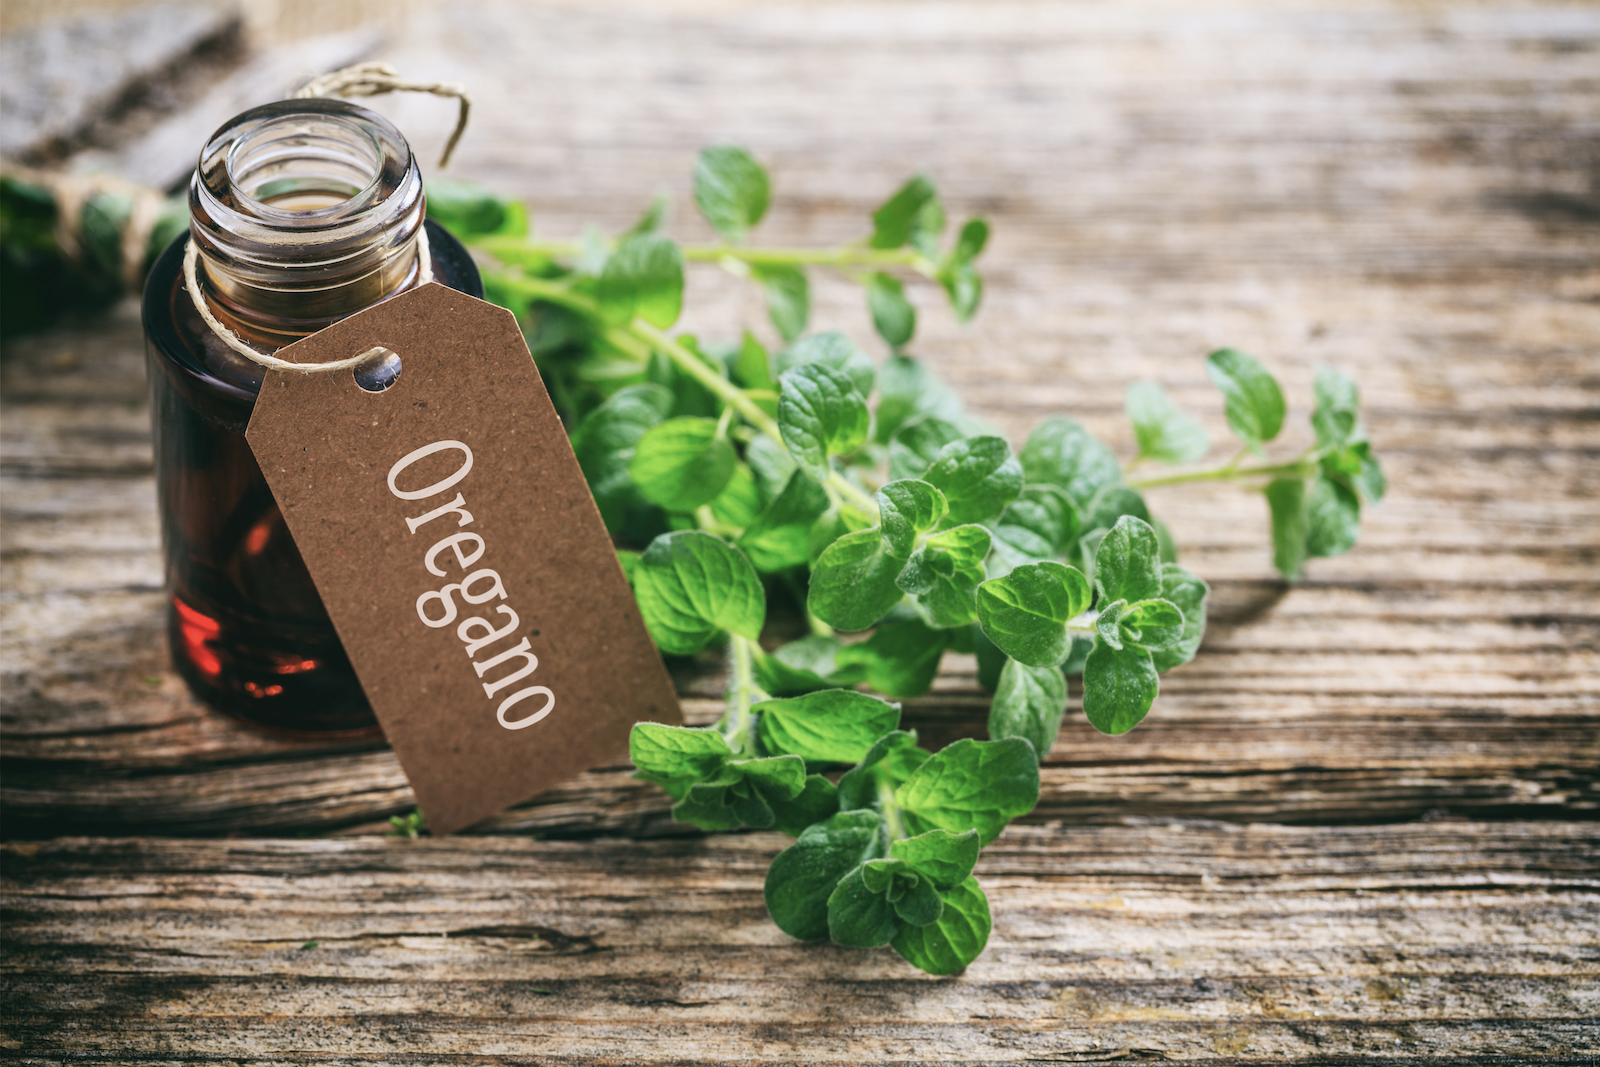 oil of oregano benefits: Bottle of oregano oil and a sprig of fresh oregano on a wooden surface